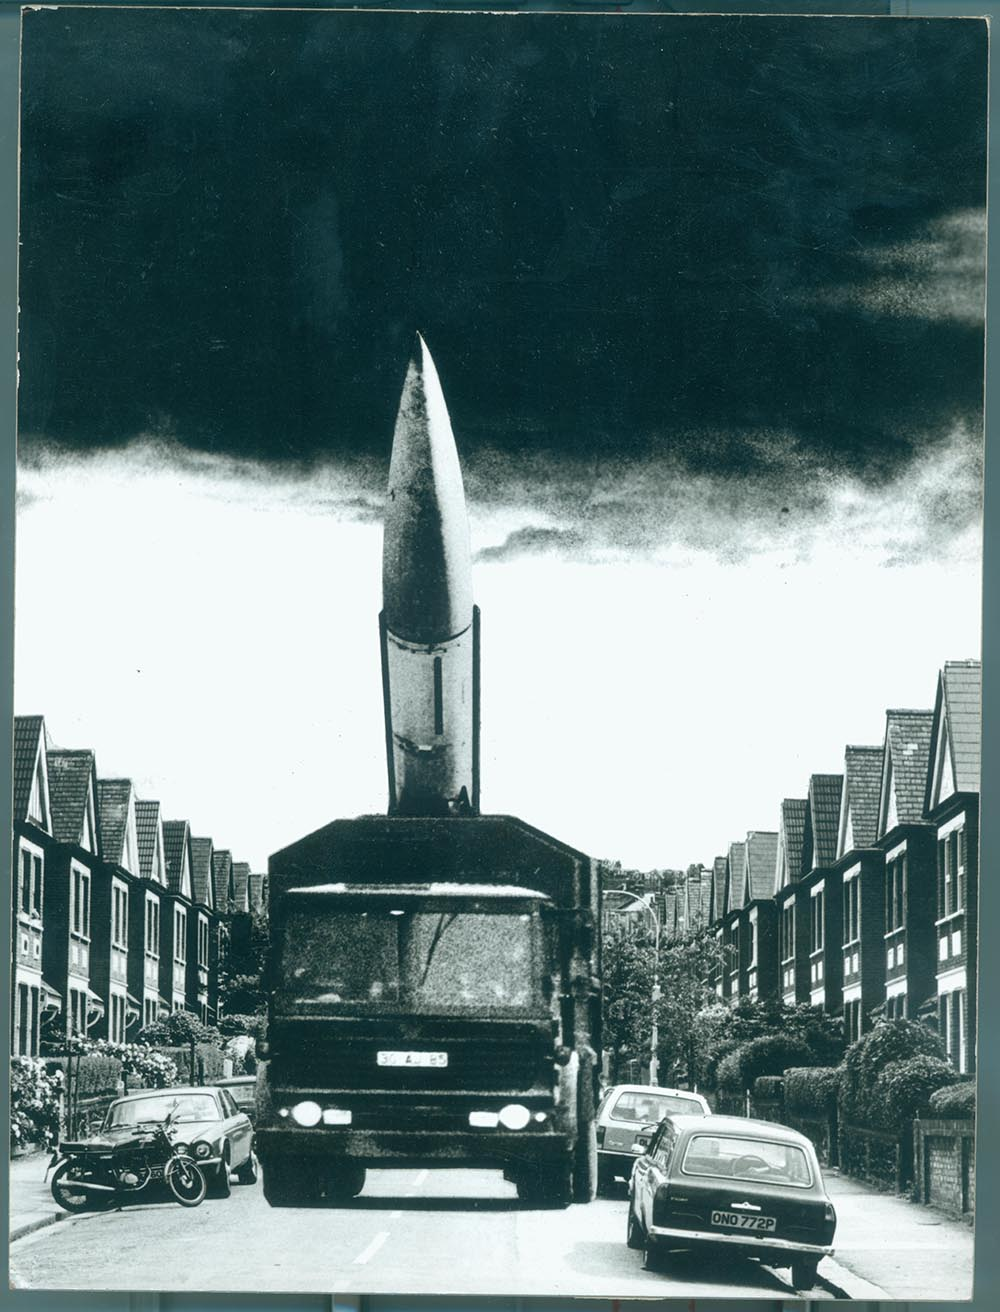 Down Your Street - PhotomontageGelatin silver prints on card1984First published:Poster for CND, 1984Catalogue: PK/175